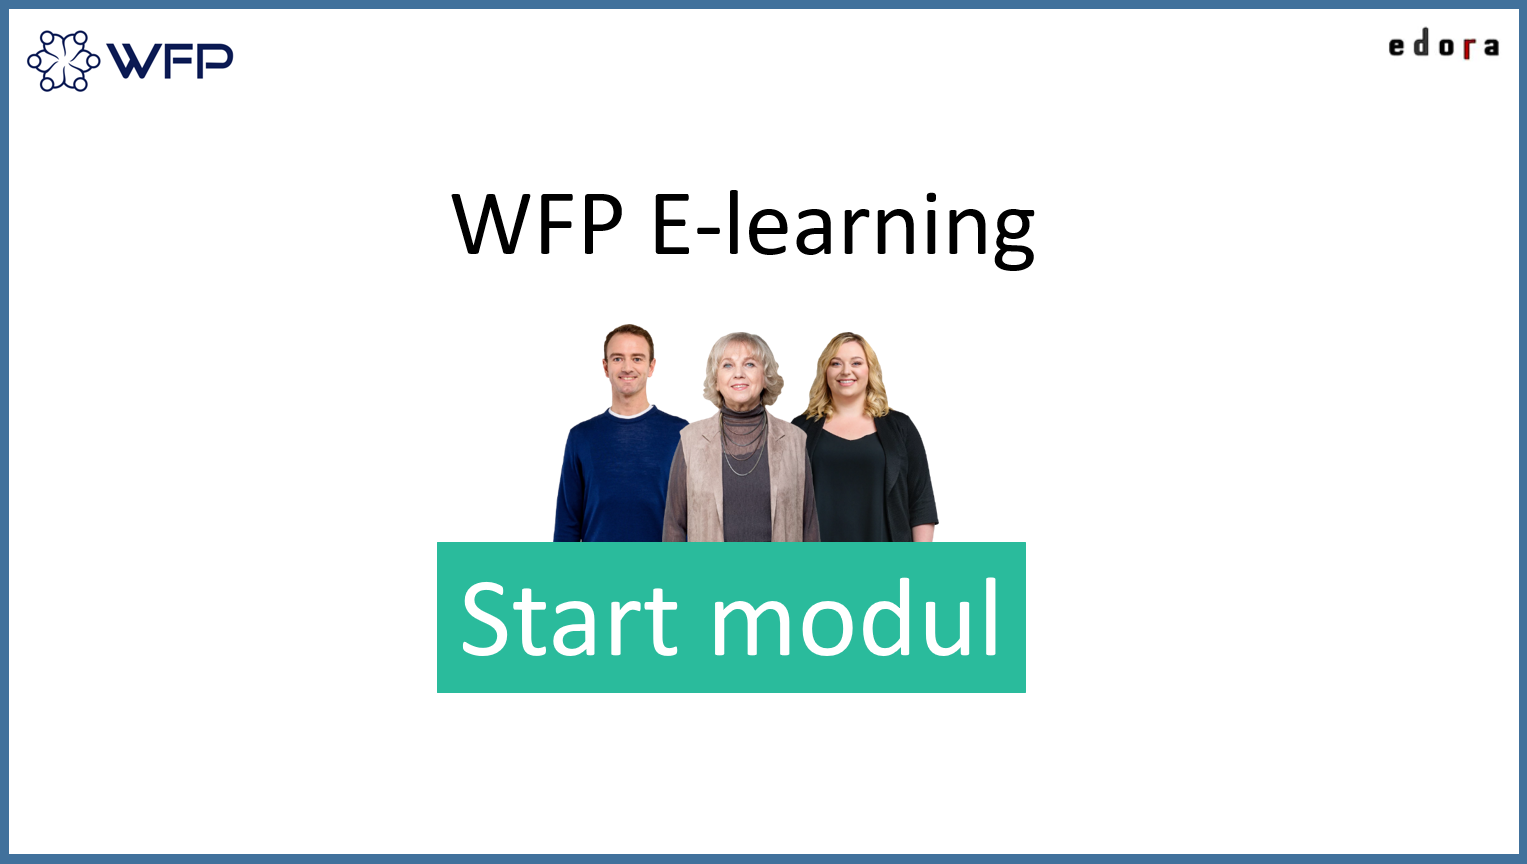 WFP E-learning